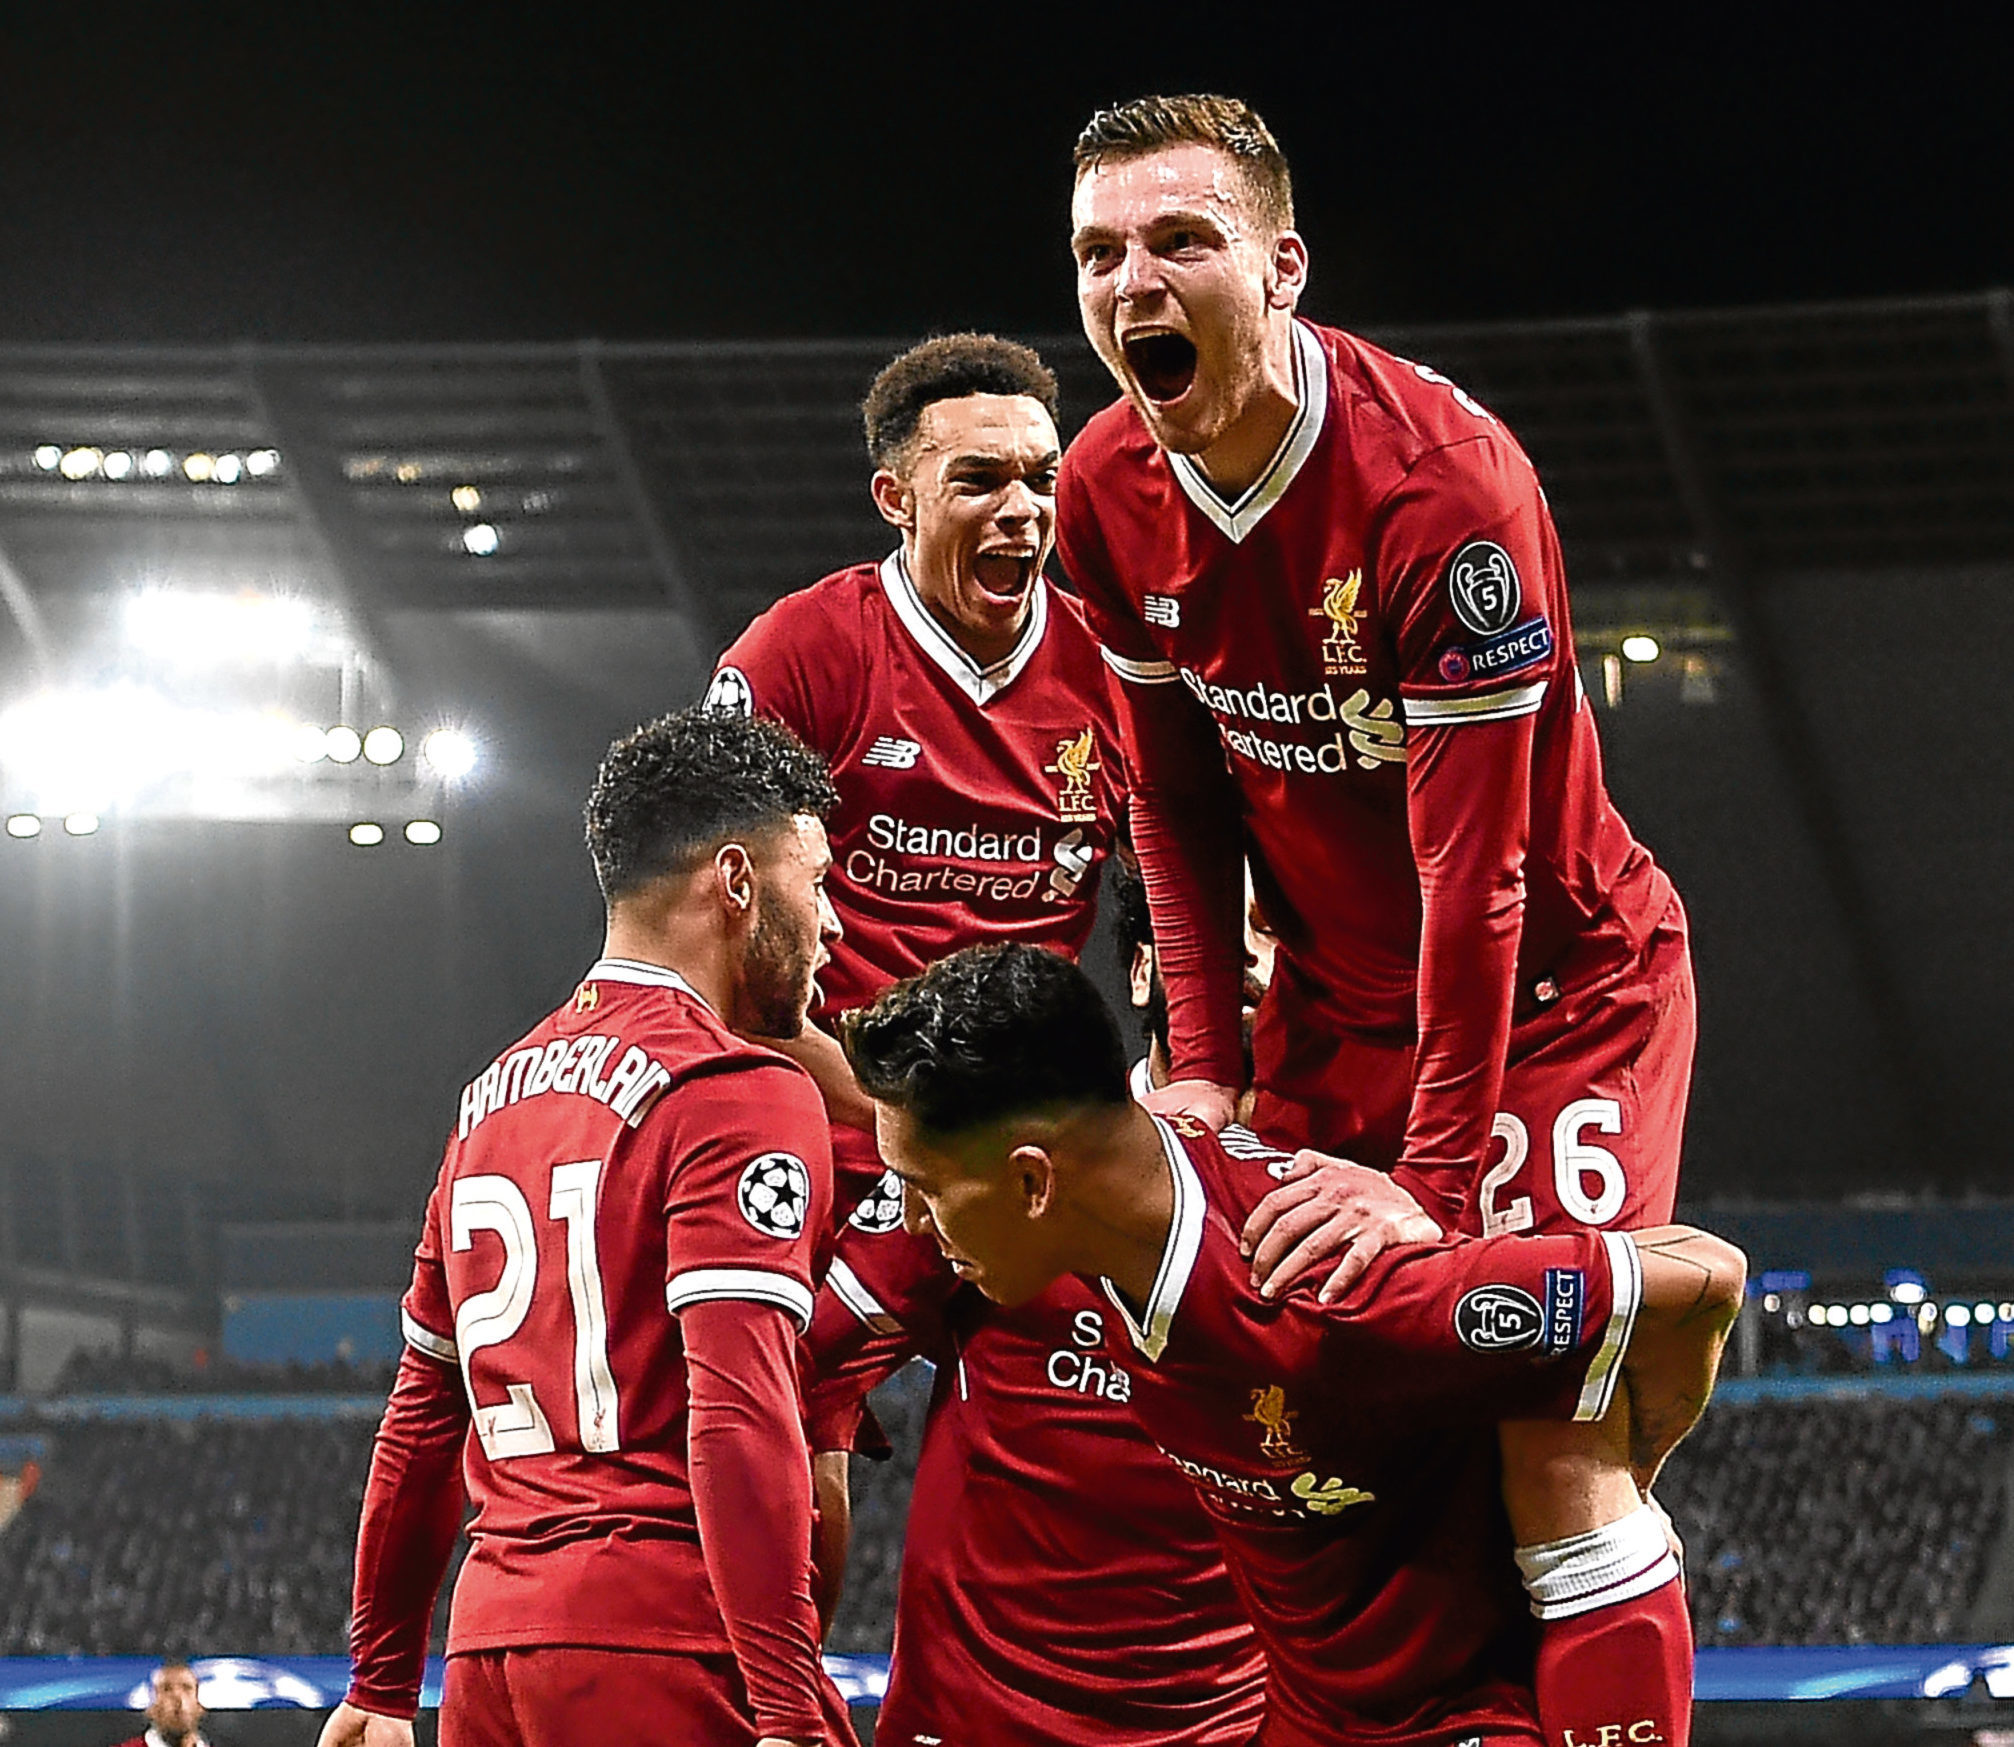 UEFA Champions League Quarter Final Second Leg match between Manchester City and Liverpool at Etihad Stadium on April 10, 2018 in Manchester, England.